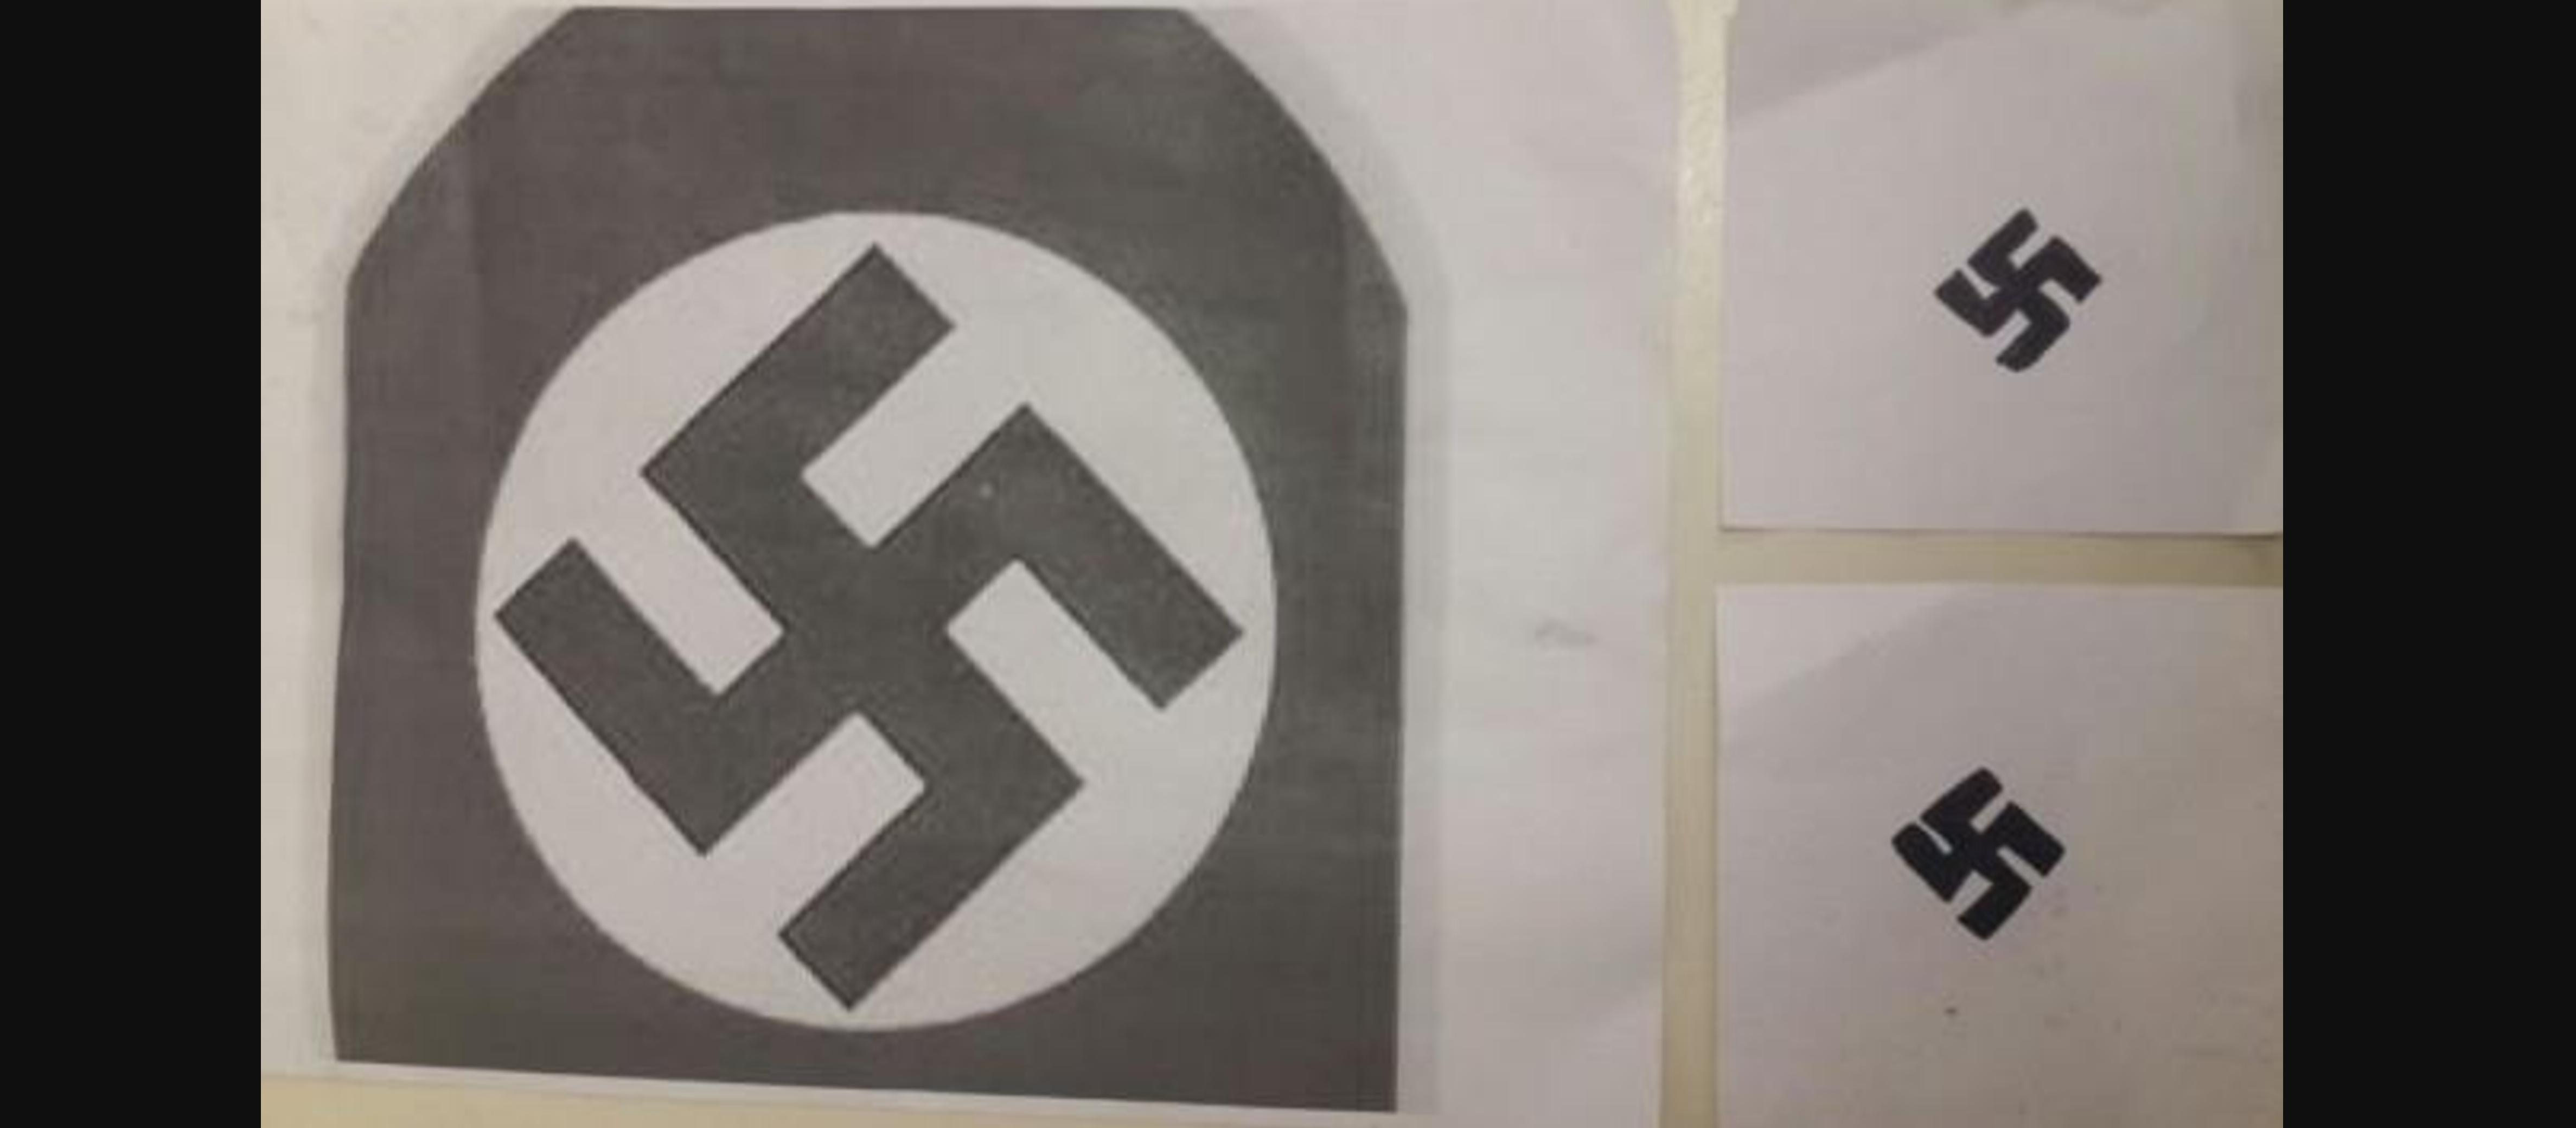 Swastikas left at Stamford Hill playground and care home – four days in a row